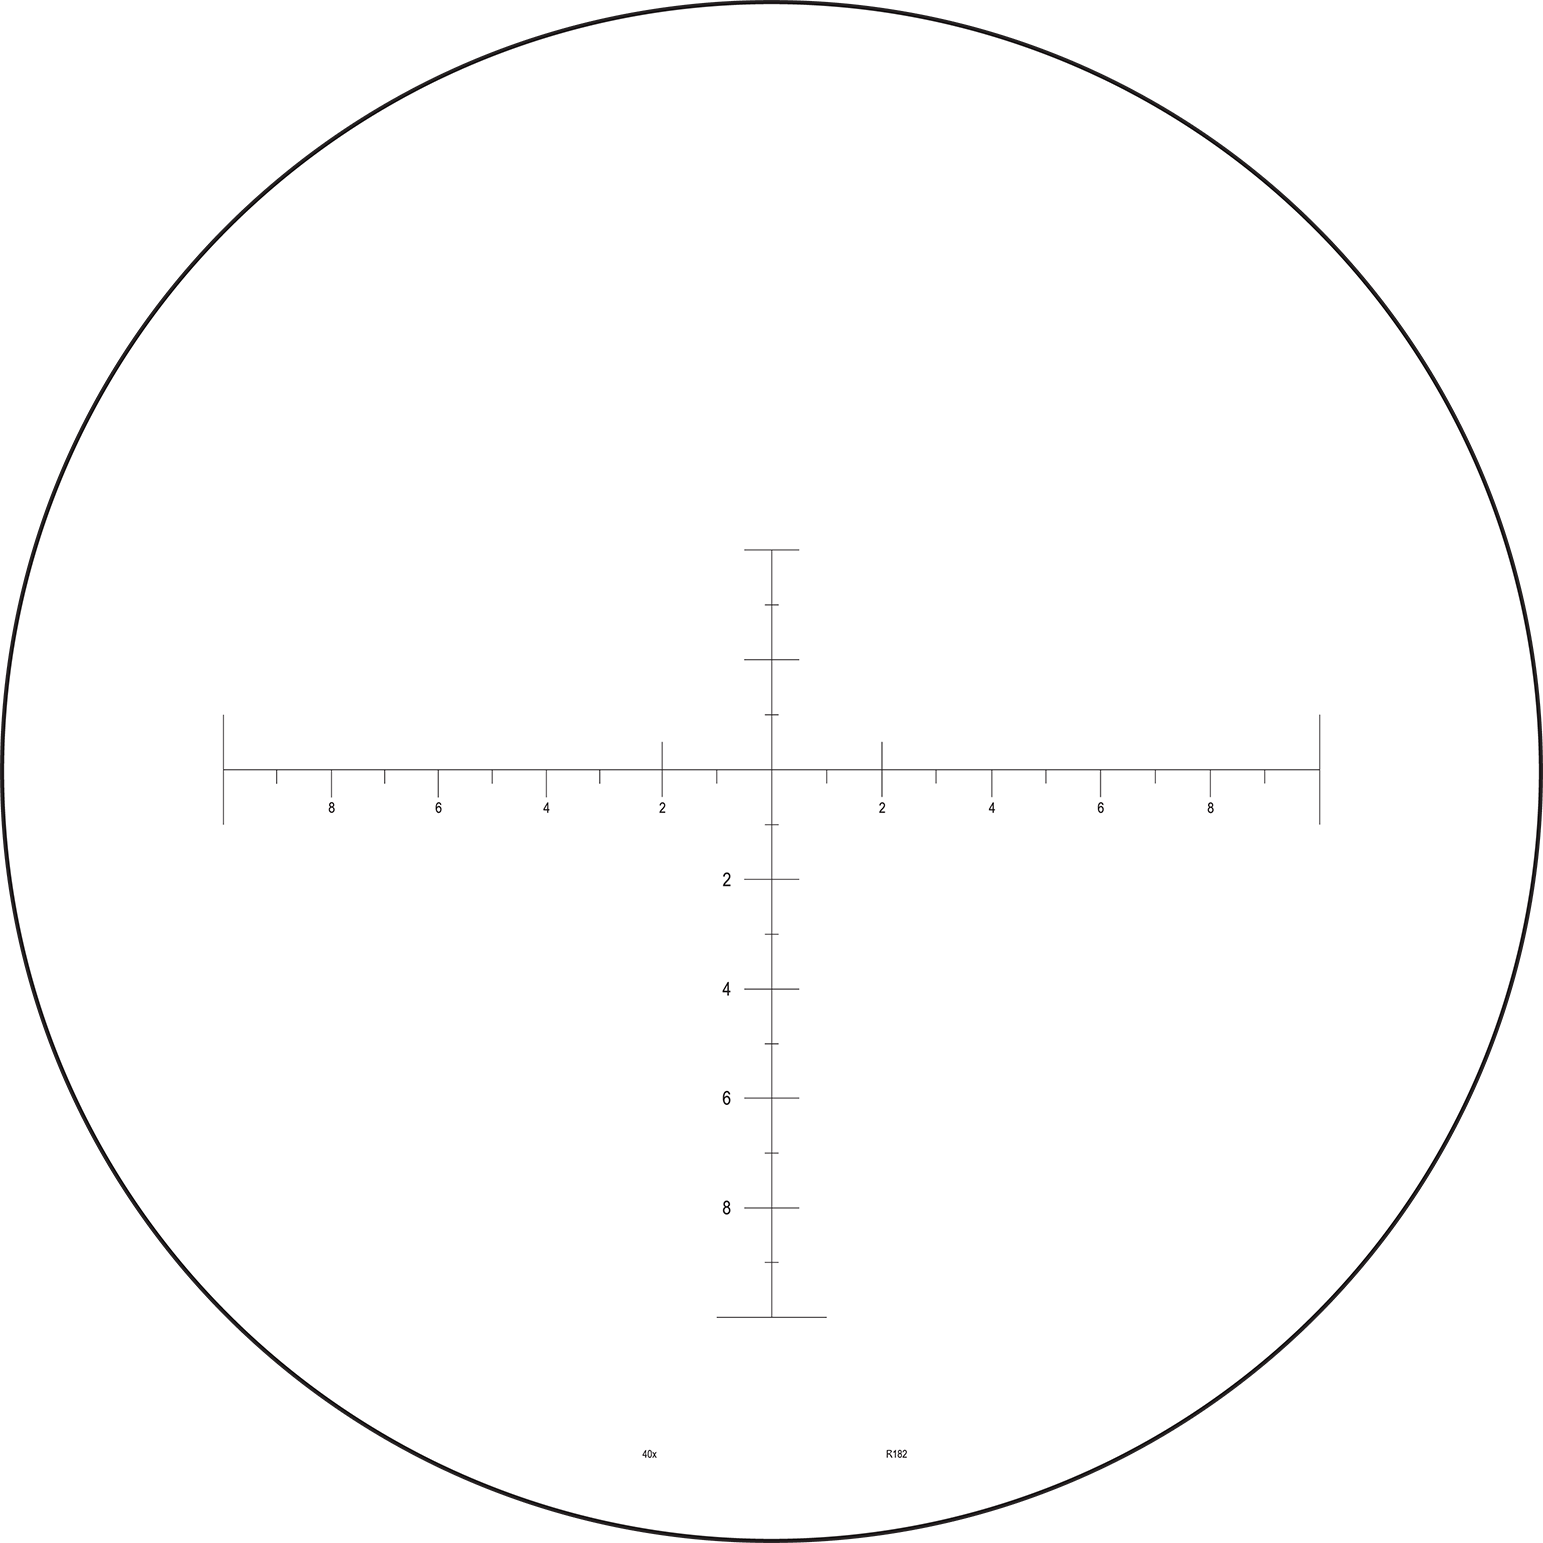 Reticle_Images - FCR-1